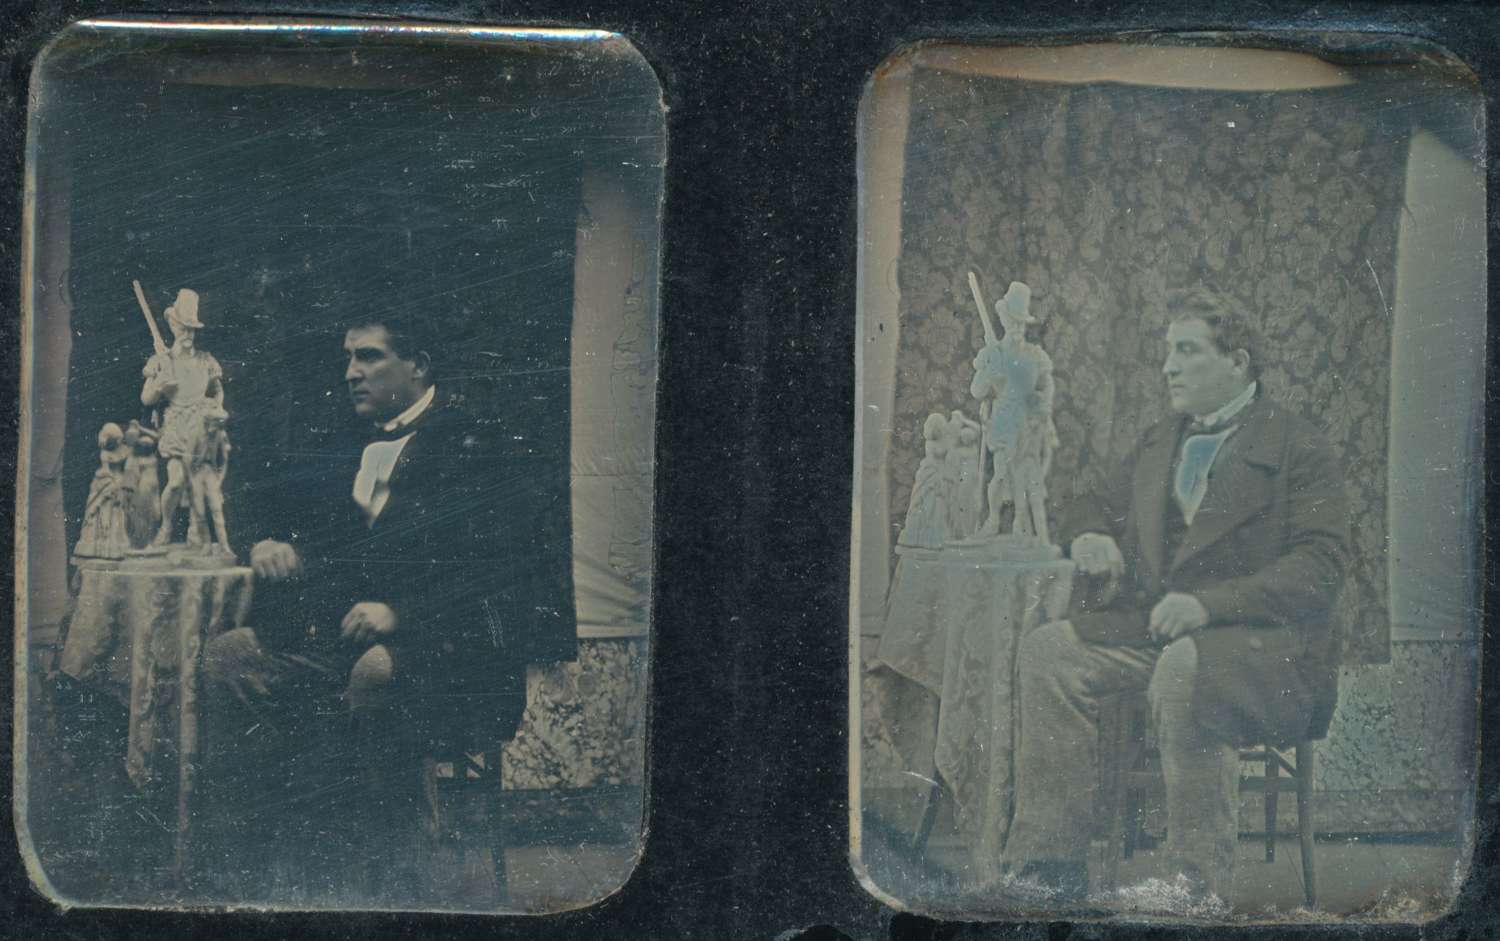 Stereoscopic Daguerreotype By London Stereoscopic Co. C1856